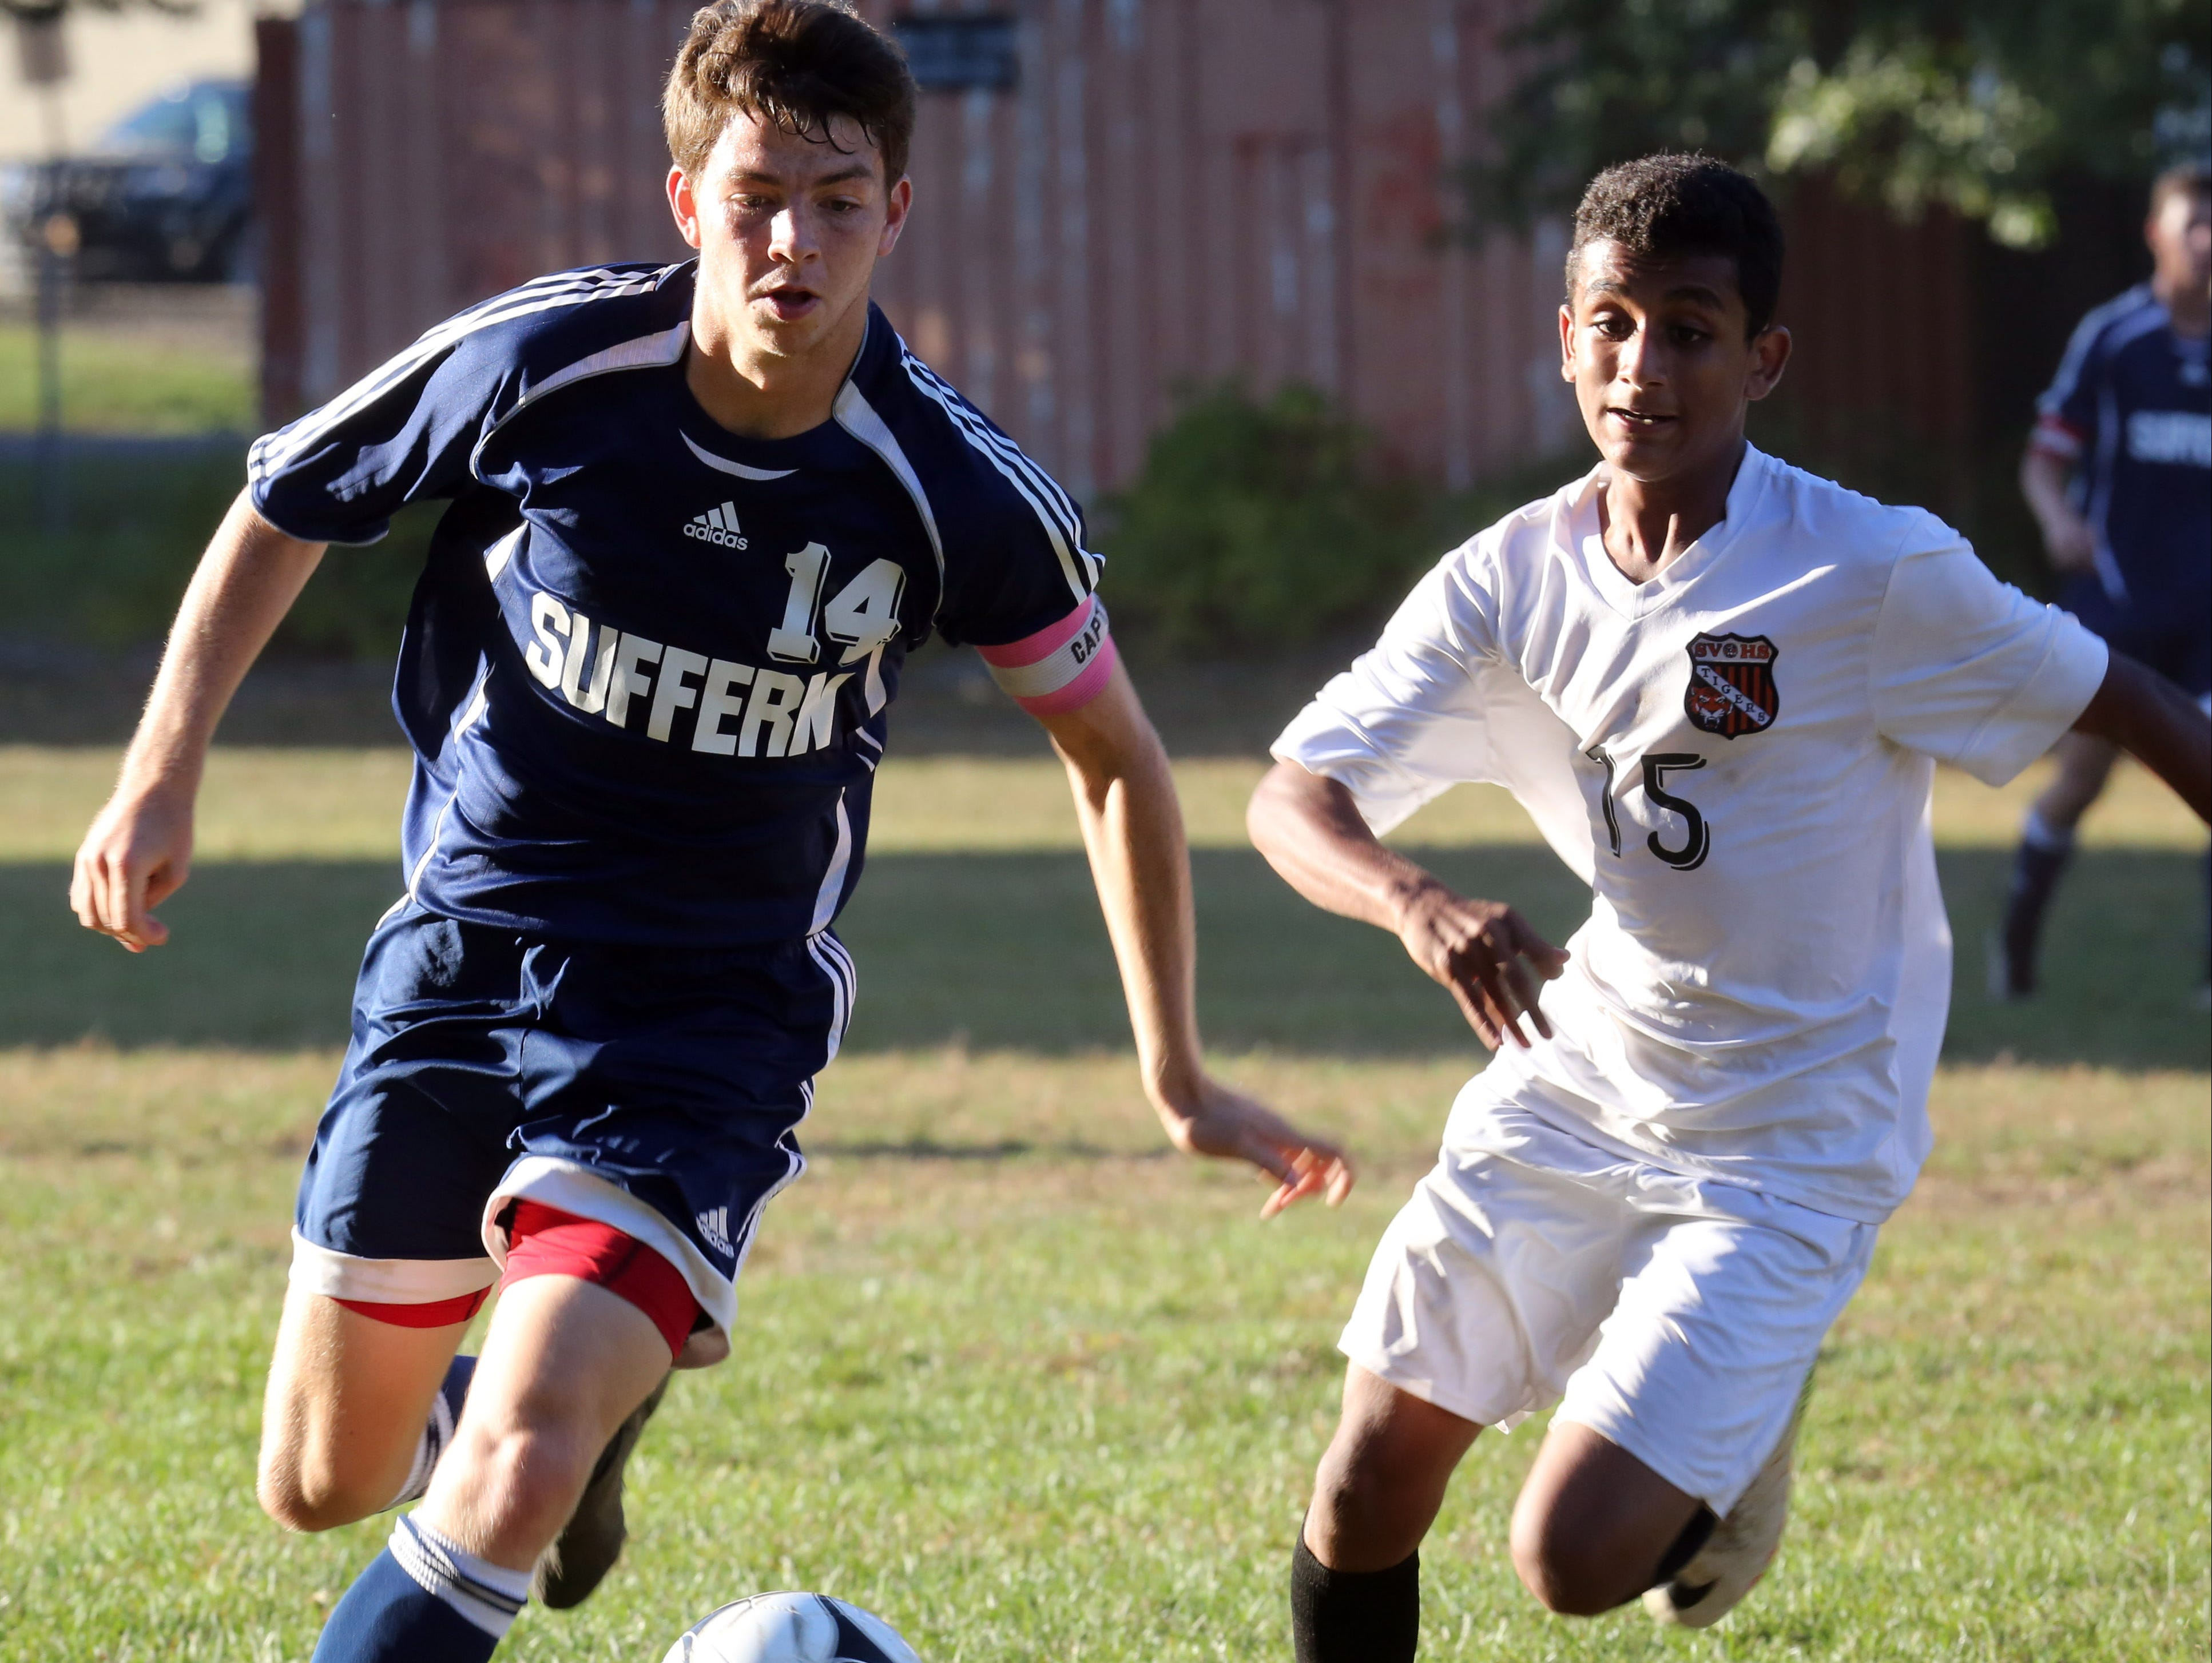 Suffern's Zac Lloyd (14) and Spring Valley's Ahmed Aly (15) battles for control of the ball during boys soccer at Spring Valley High School on Oct. 6, 2016.